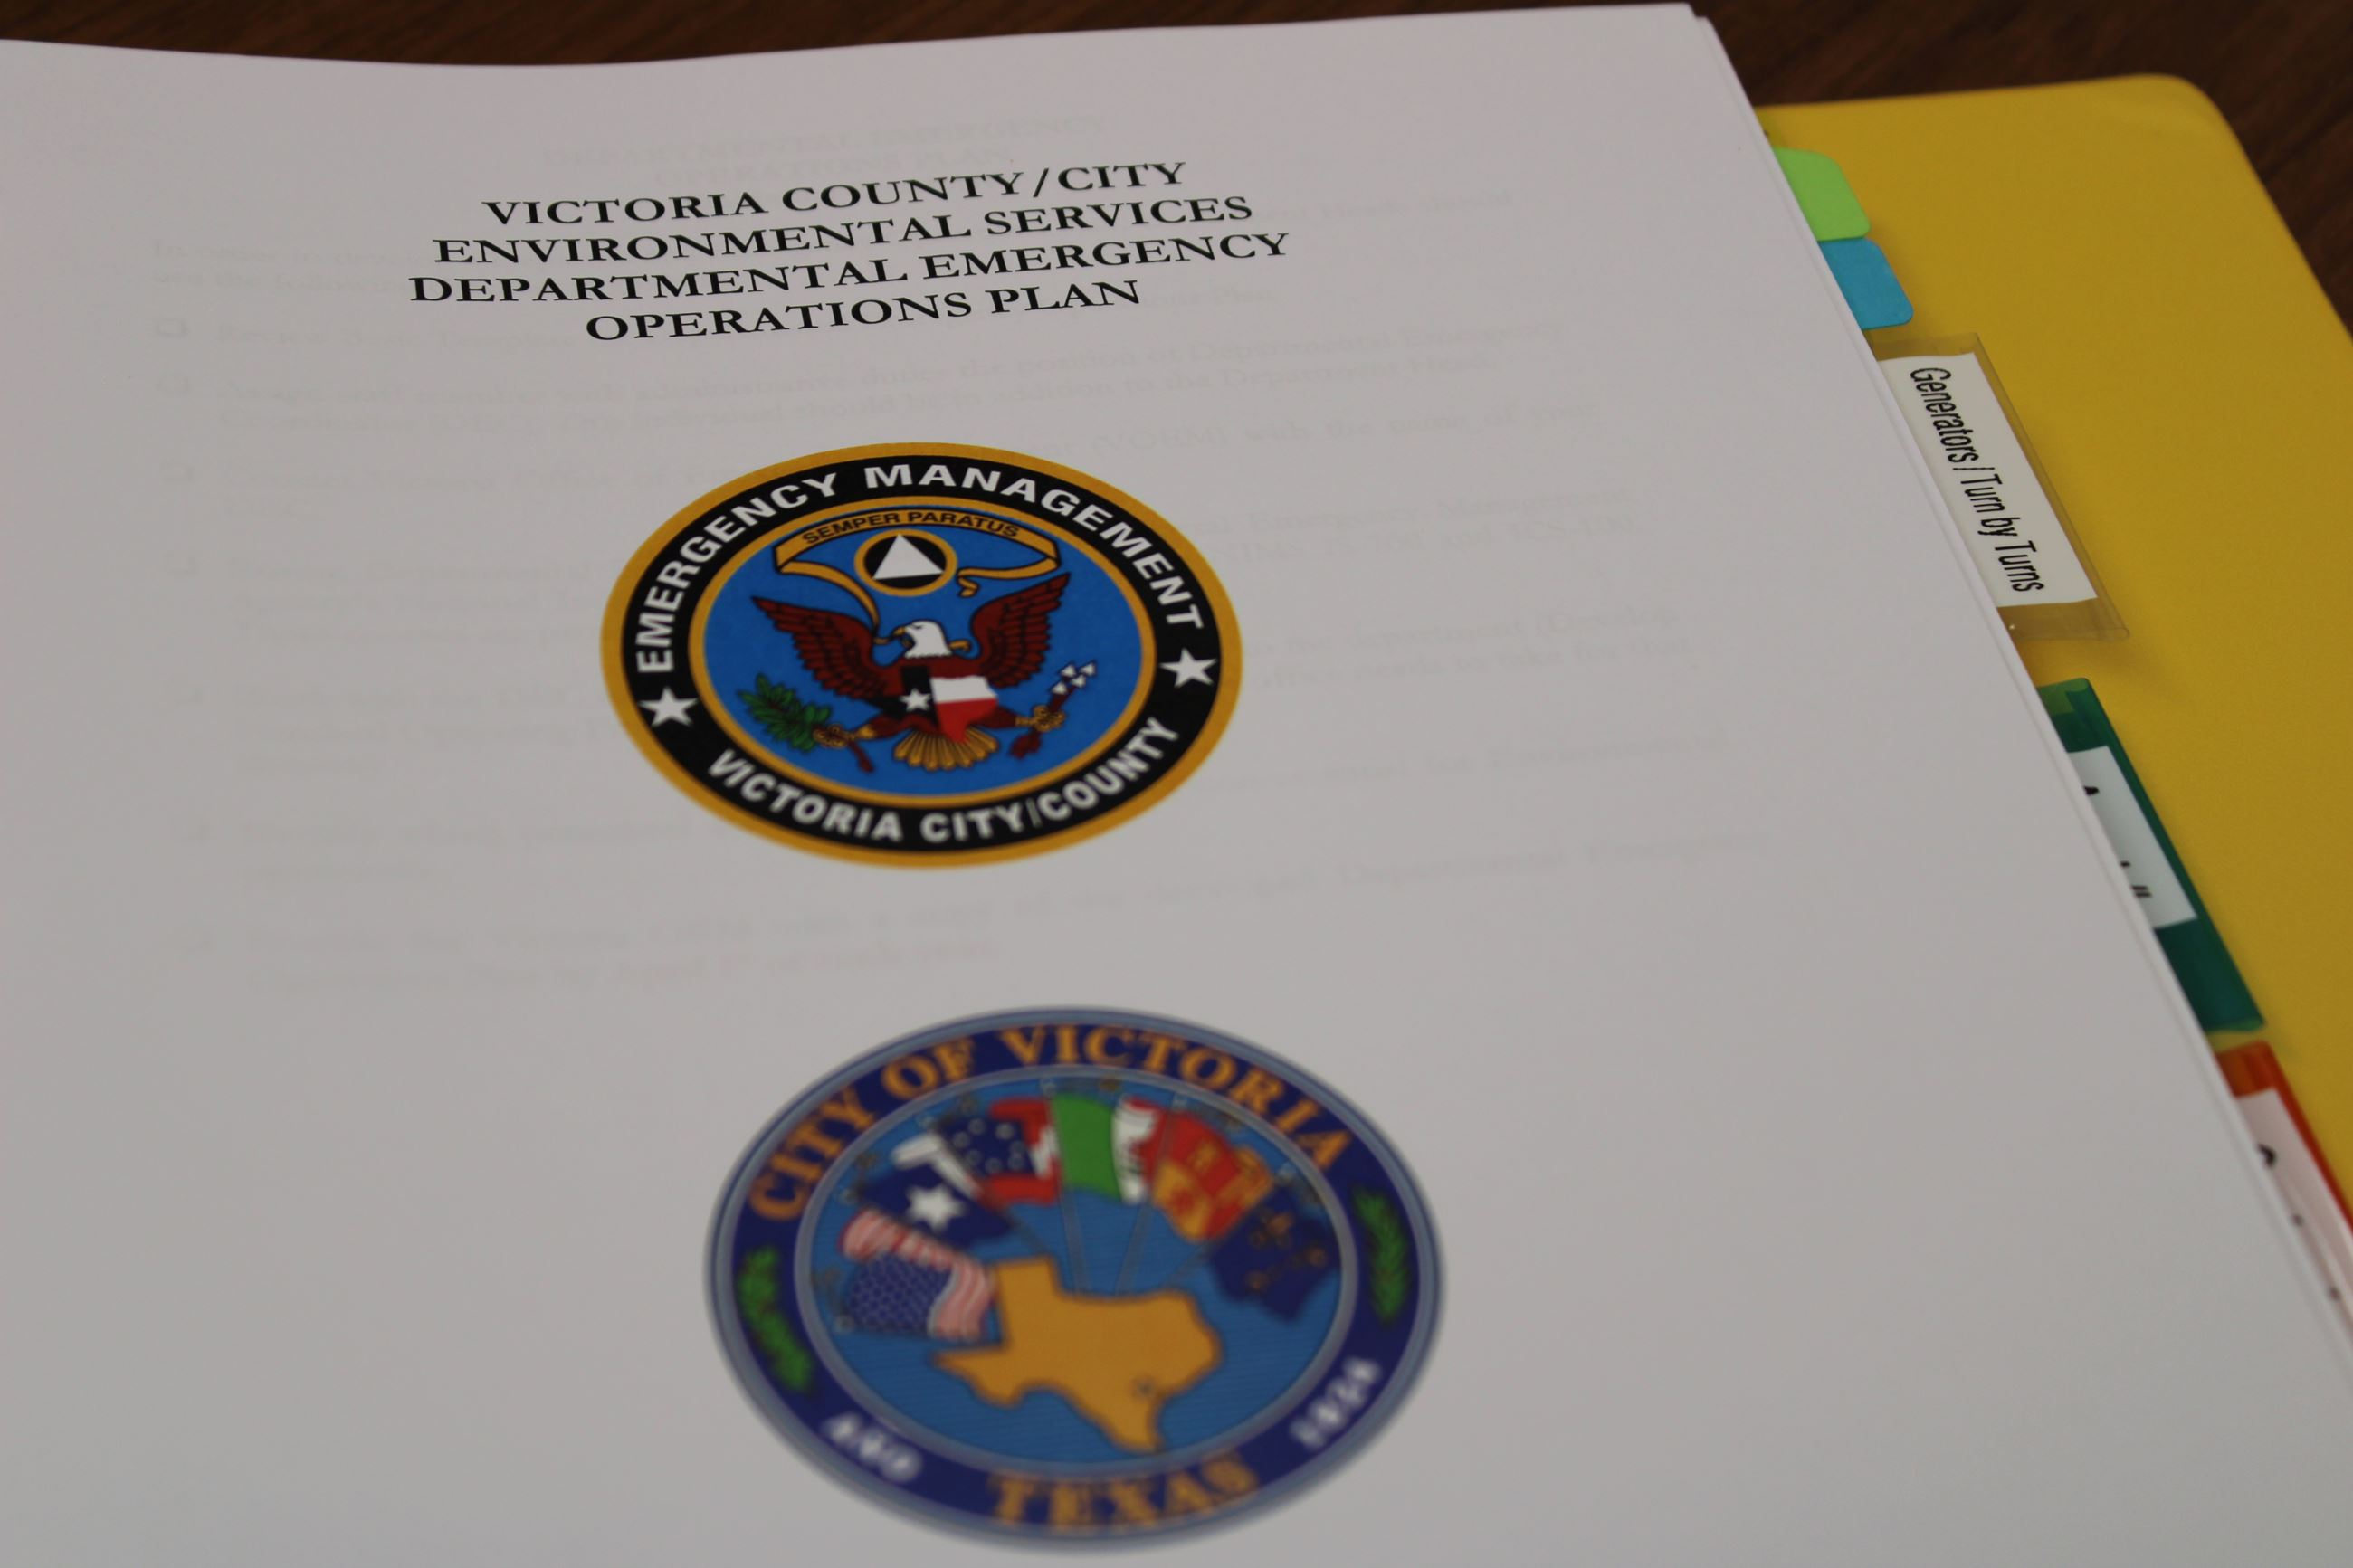 Yellow binder open to page displaying City and Office of Emergency Management logos